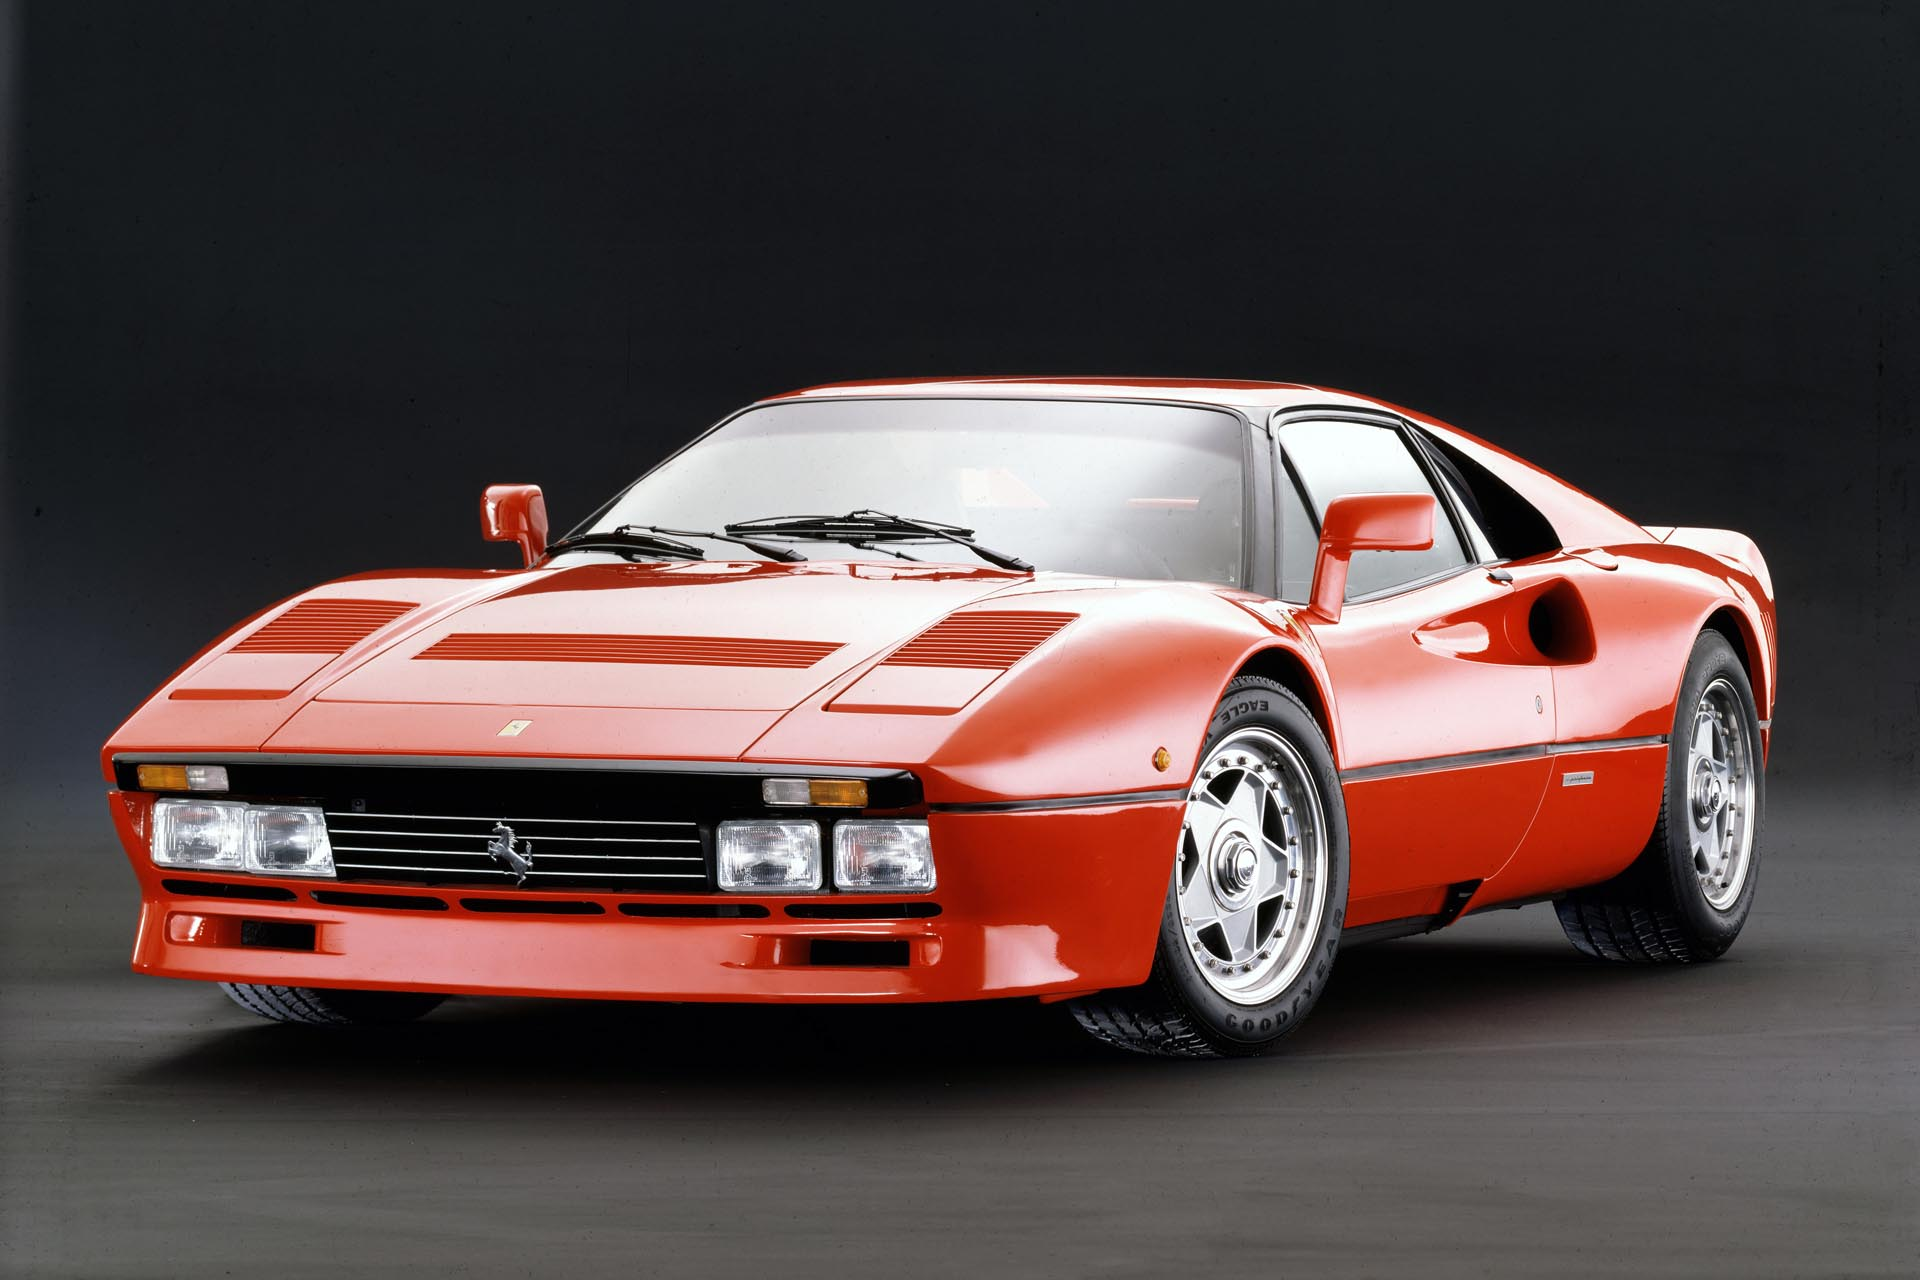 If your image of a classic Ferrari is a curvaceous shape carving up perfectly smooth tarmac, then here's a jolt for you. Imagine this thing shod in knobbly tires, spraying gravel and flame out the back as it hurtles through some dark Scandinavian forest, battling Audis and Lancias for the title.